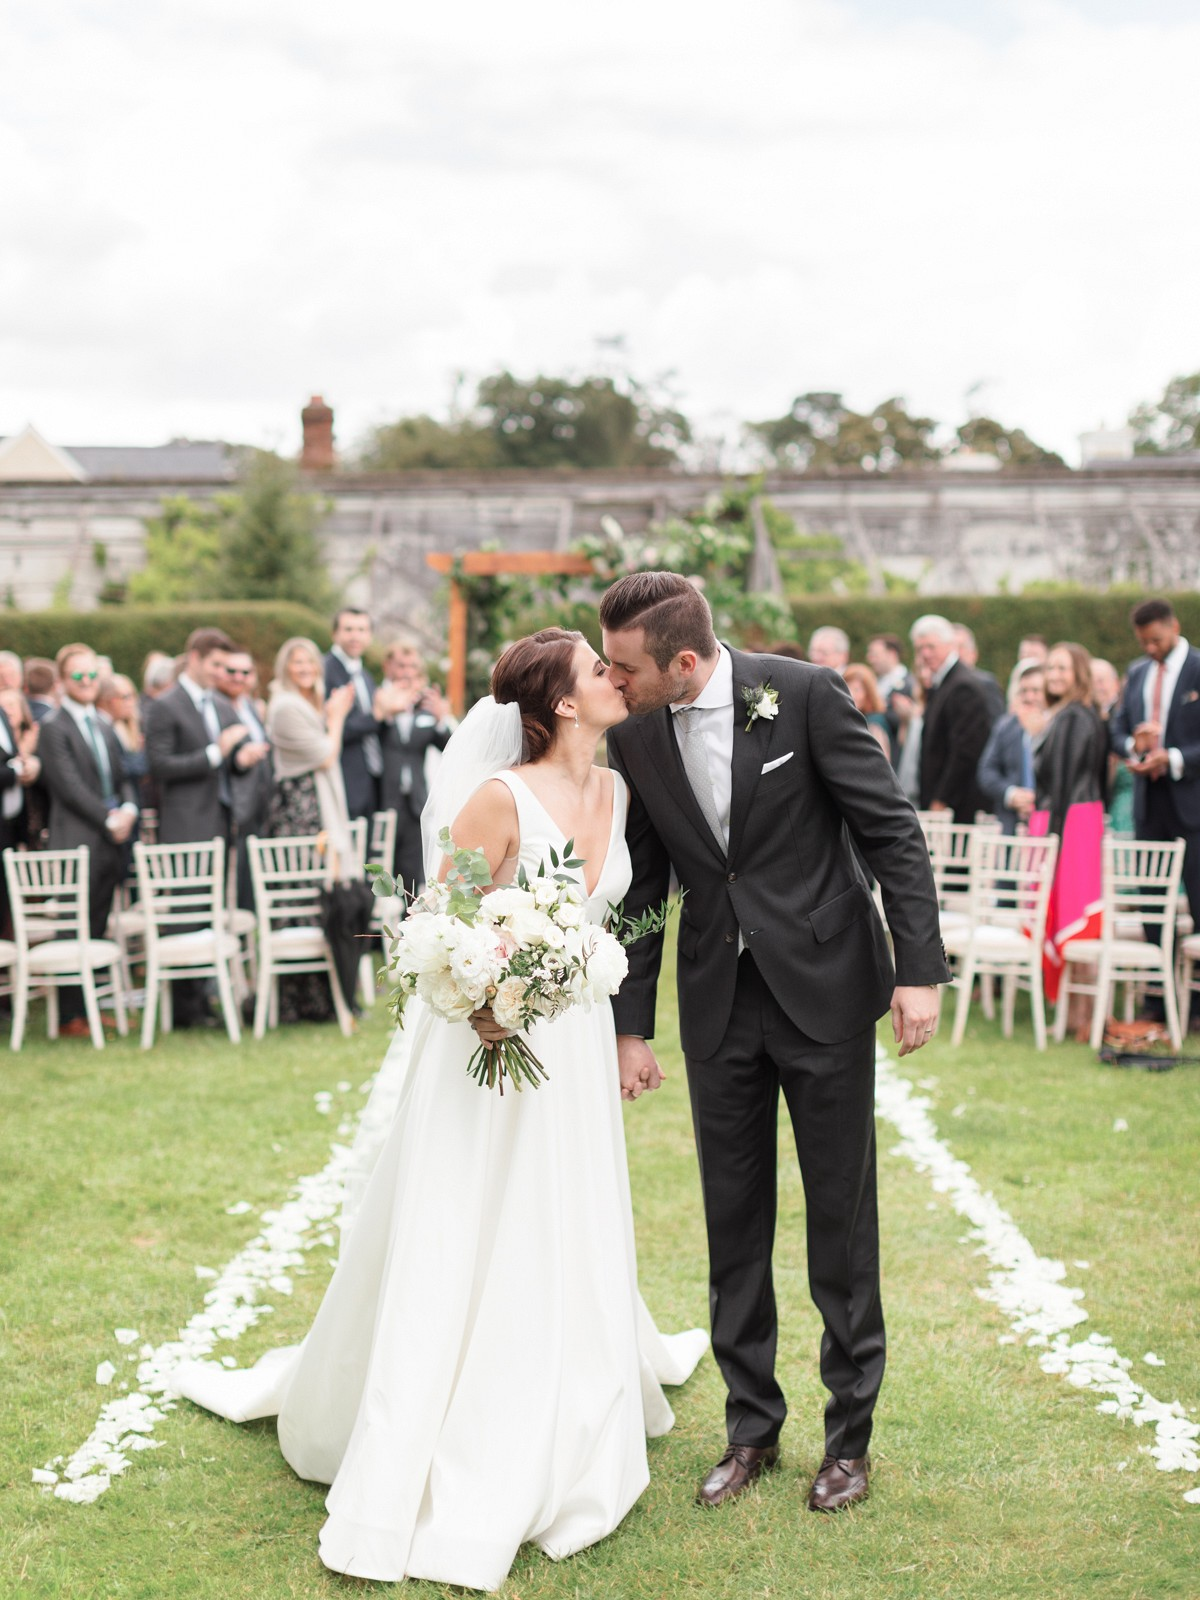 An Irish Manor House Wedding with Grey Bridesmaids Dresses